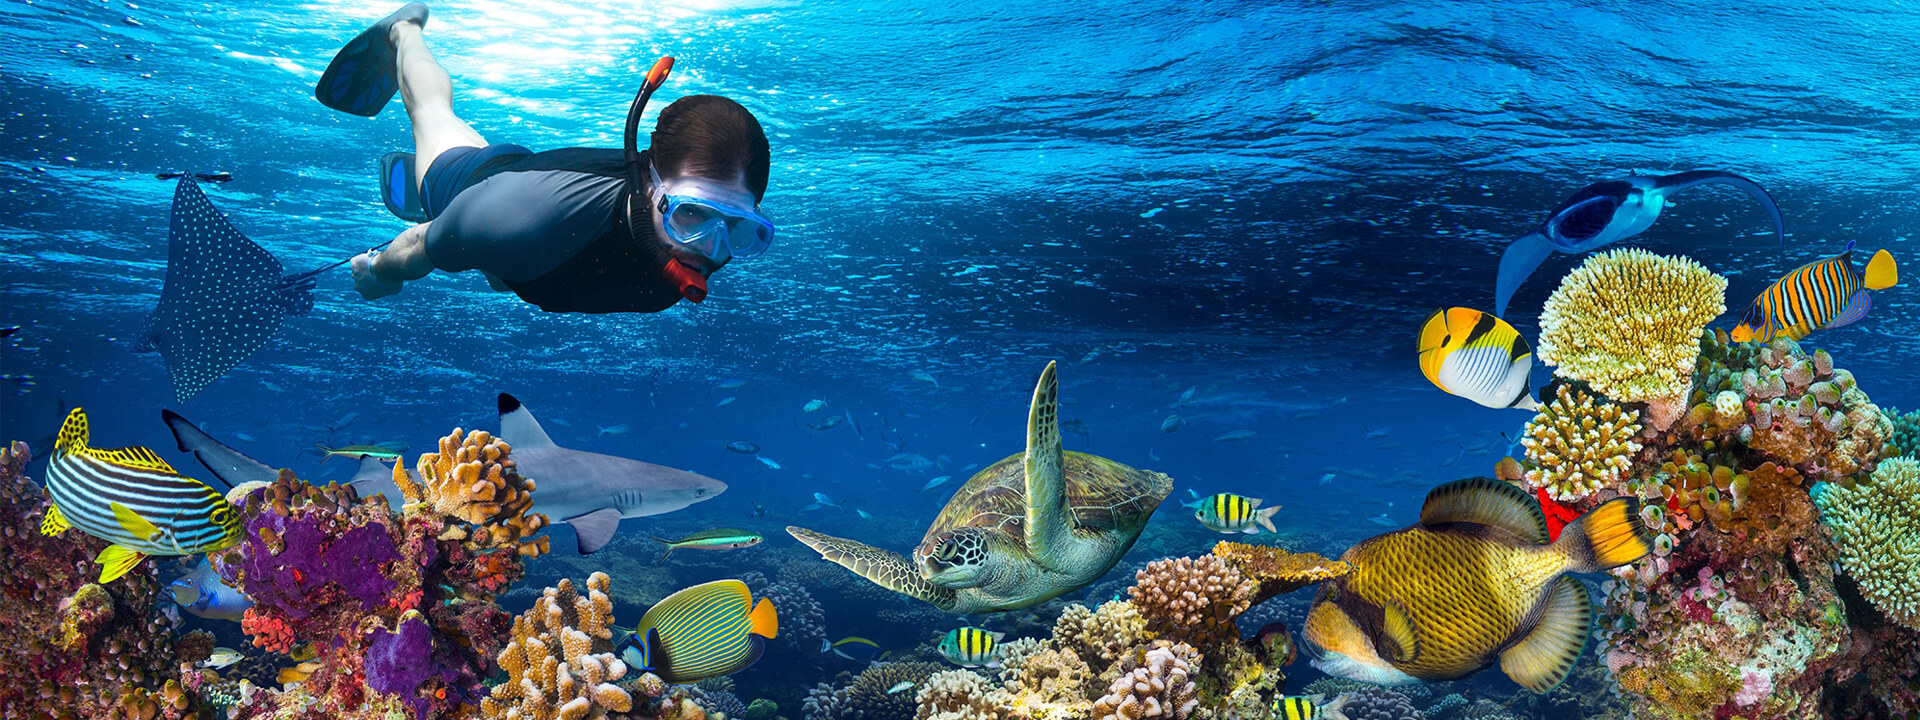 Private Tour Snorkeling in Cancun and Riviera Maya